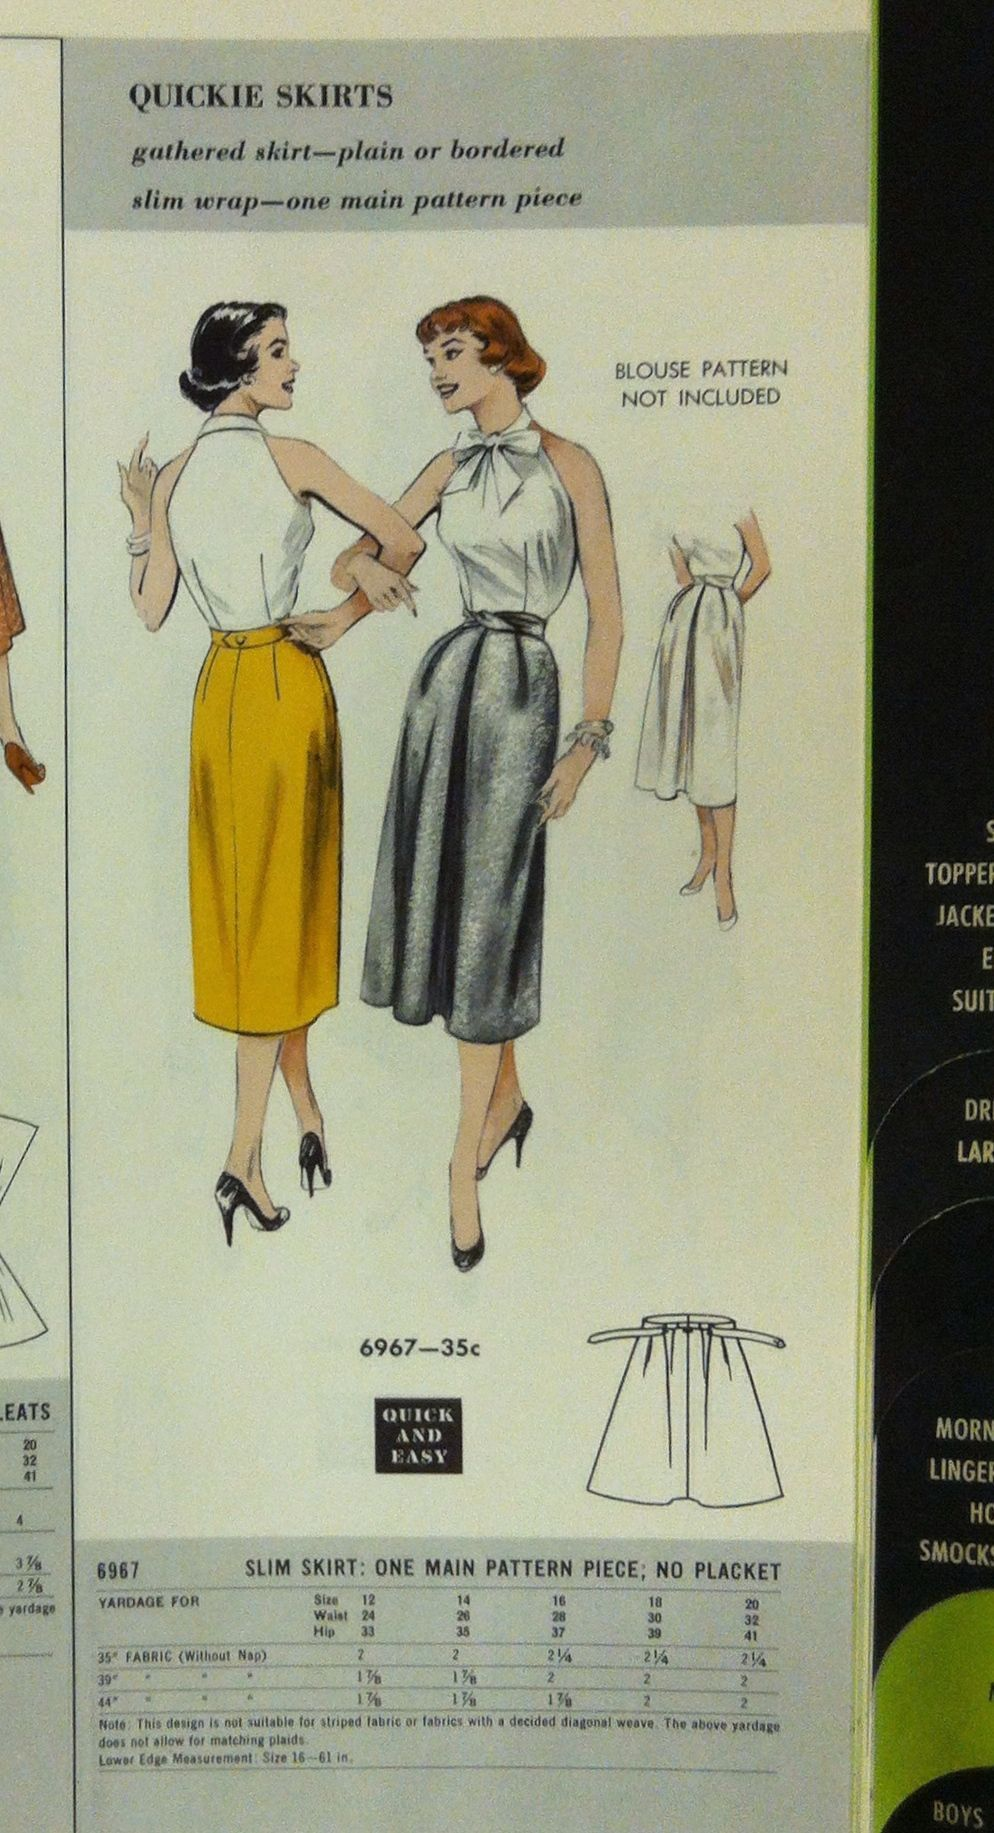 From The McCall Pattern Company archives: a page from a 1954 Butterick Patterns catalog. #butterickpatterns #vintagepatterns